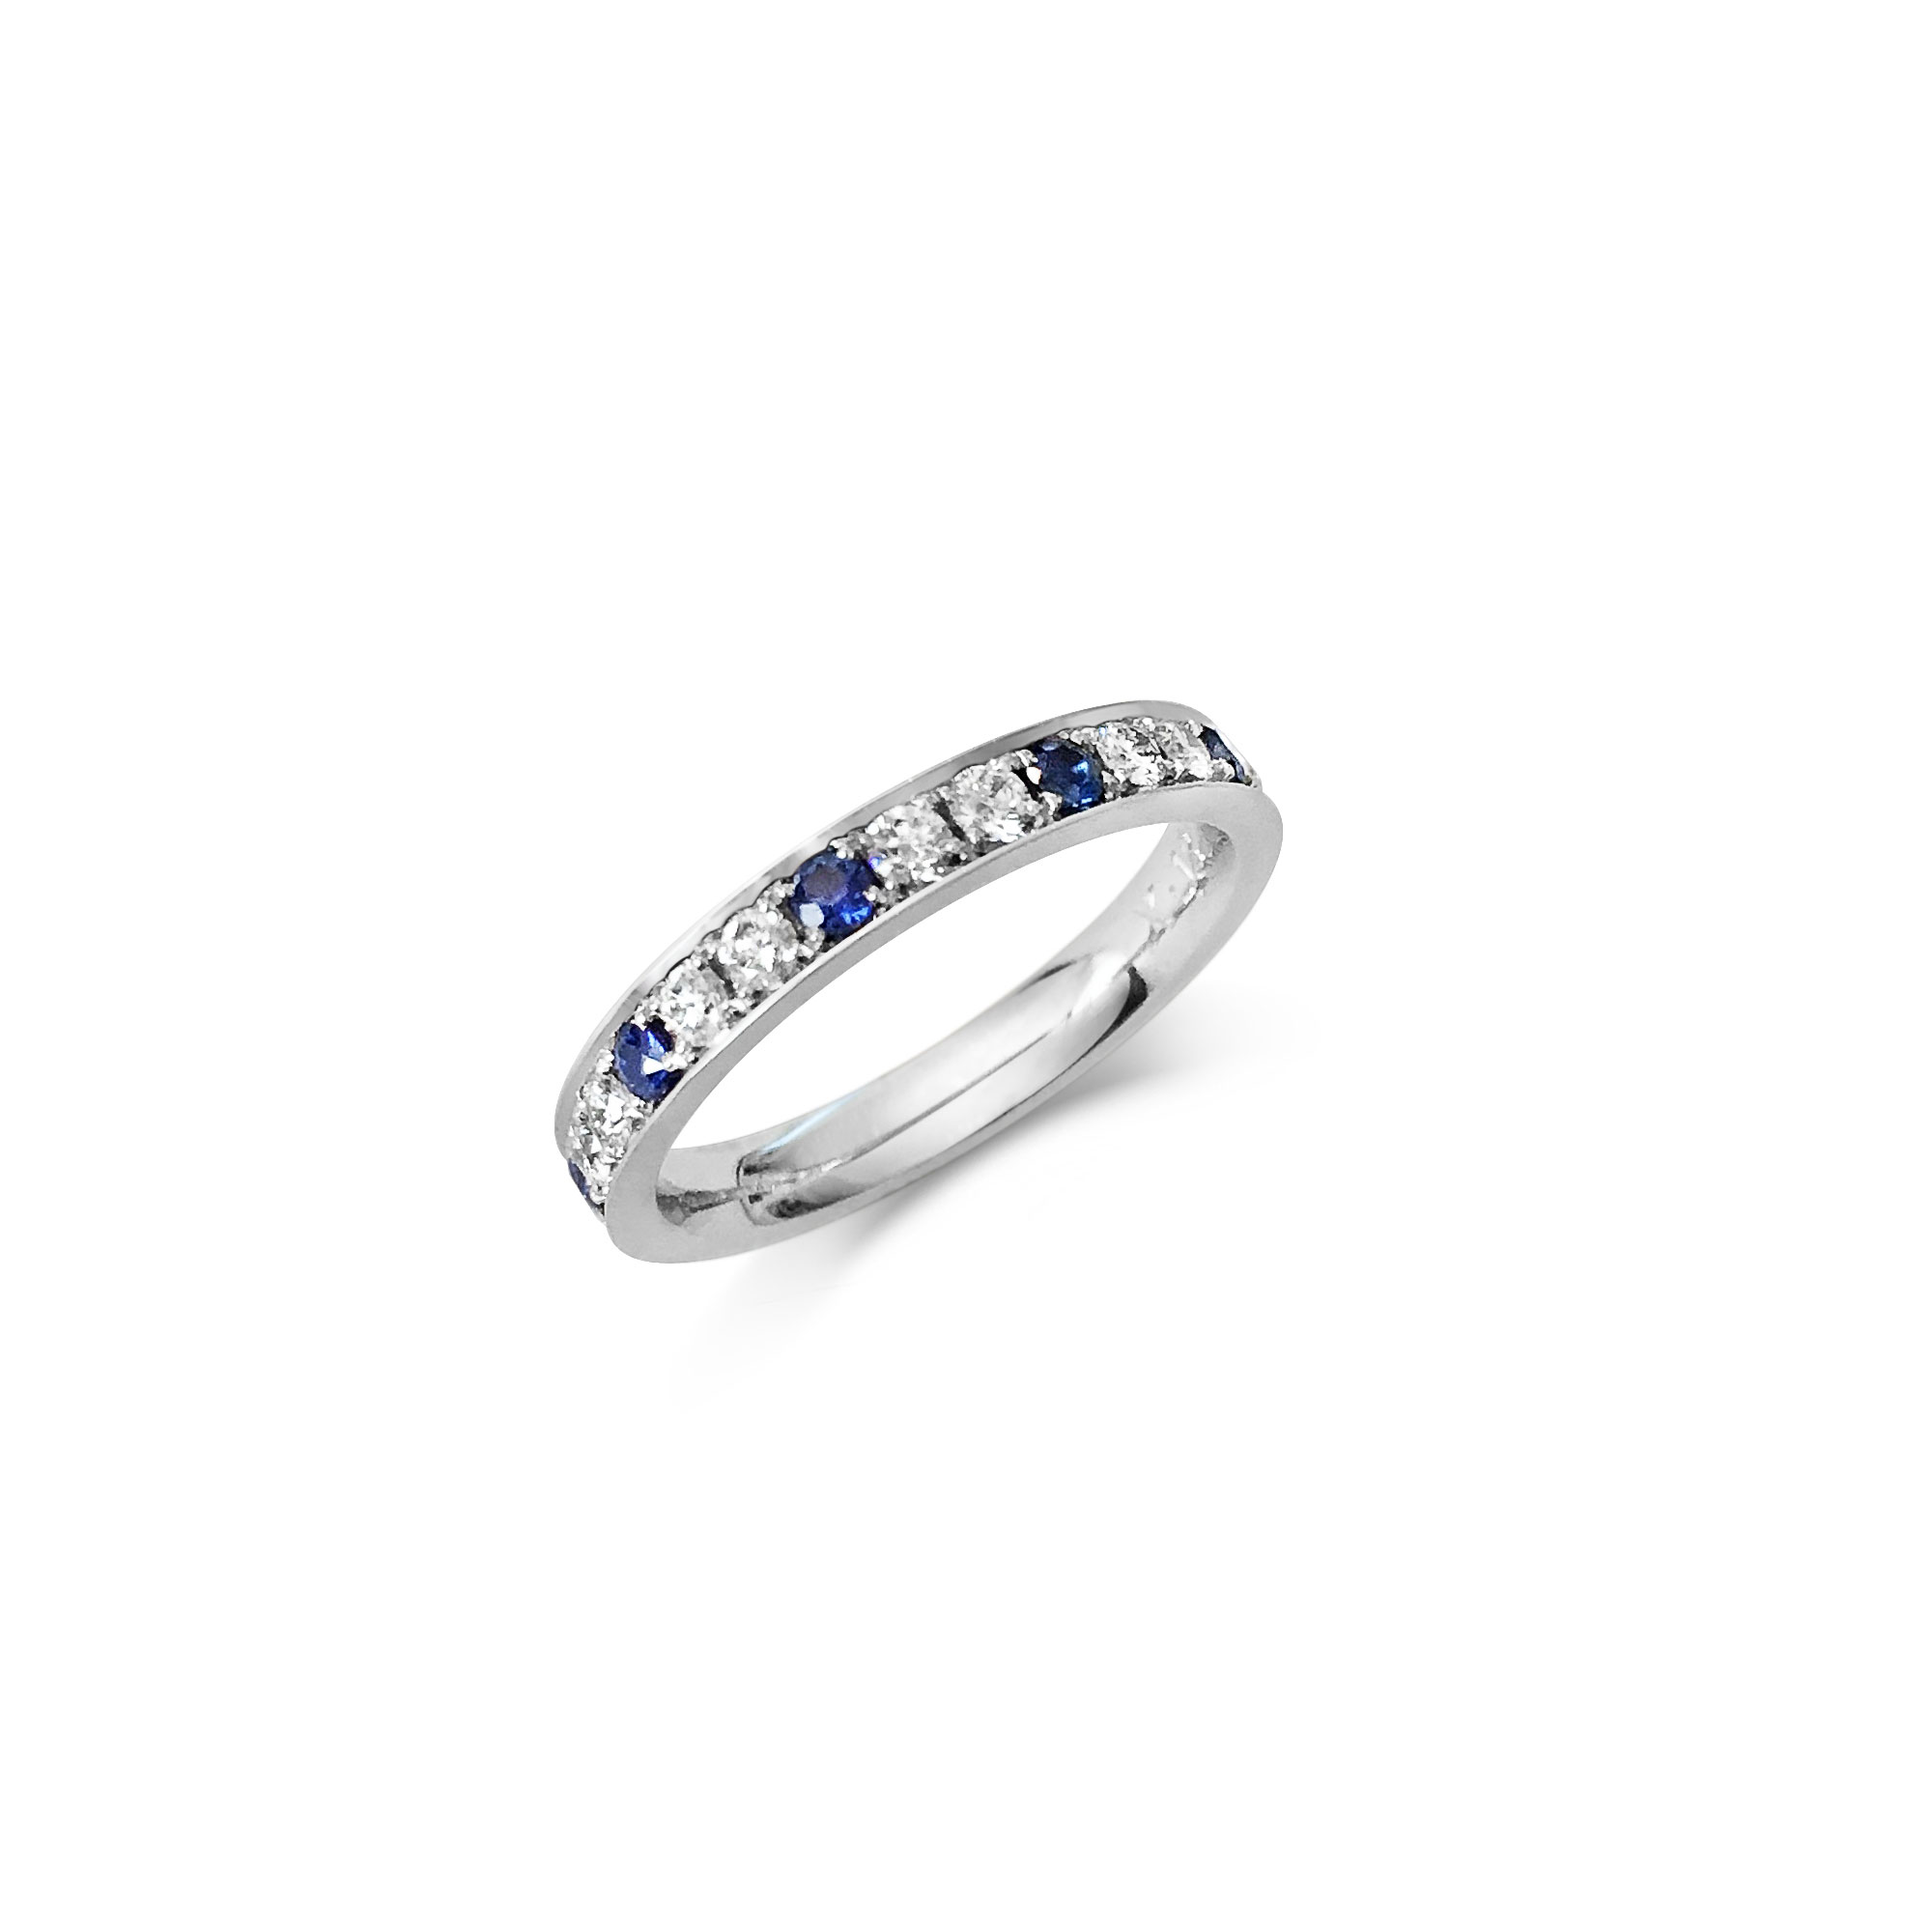 Sapphire and diamond eternity ring in platinum